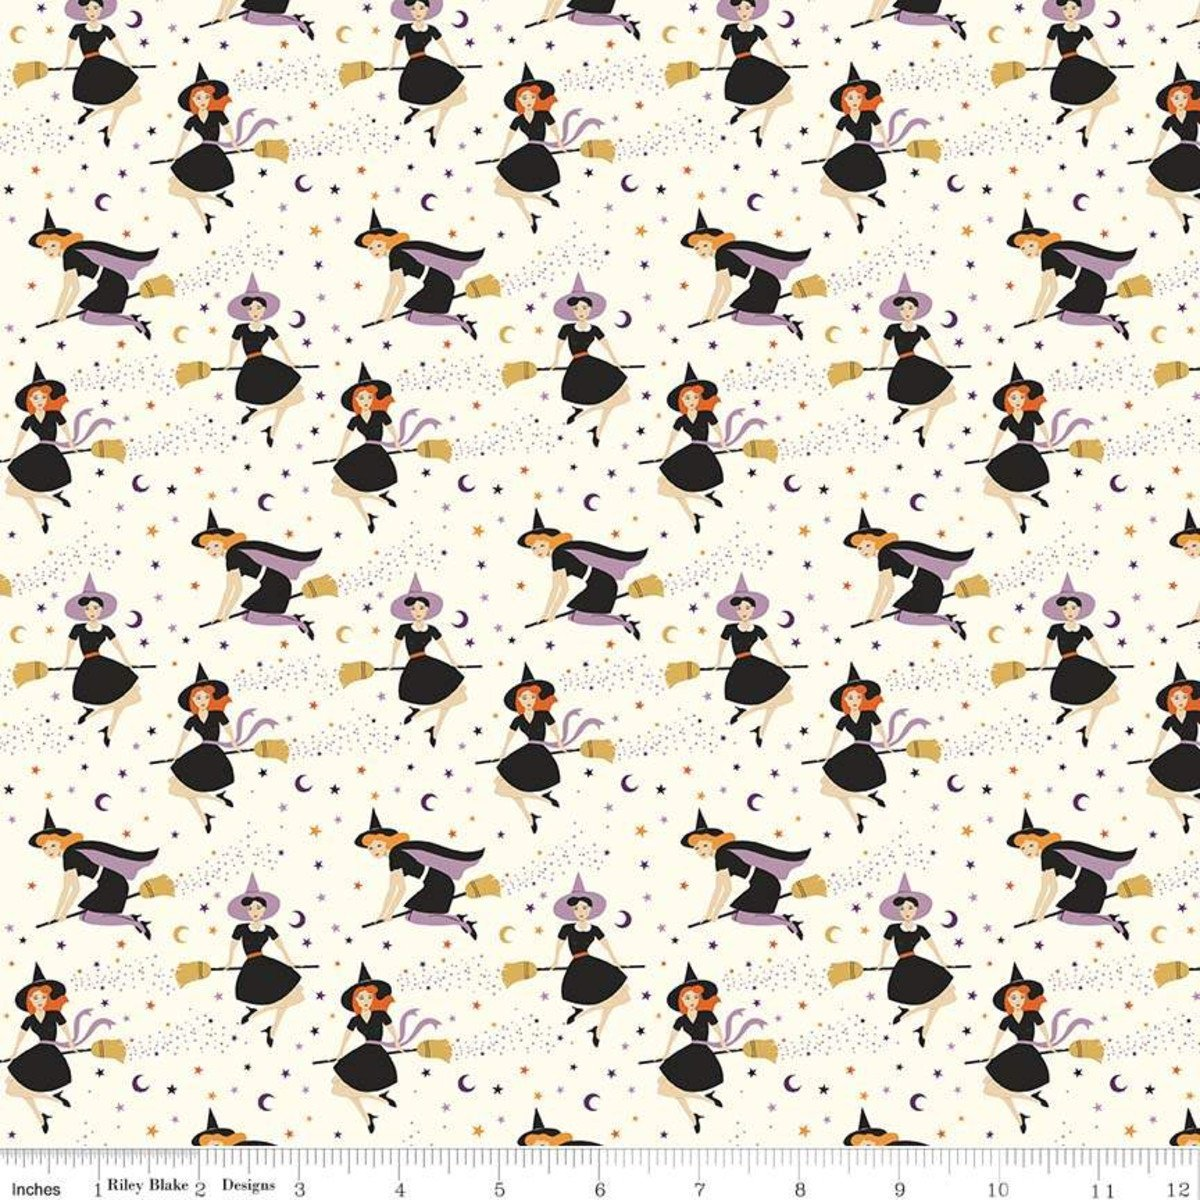 Fab-Boo-Lous for Riley Blake - Witches Cream - Sold by the Yard and Cut Continuous - Ships Today